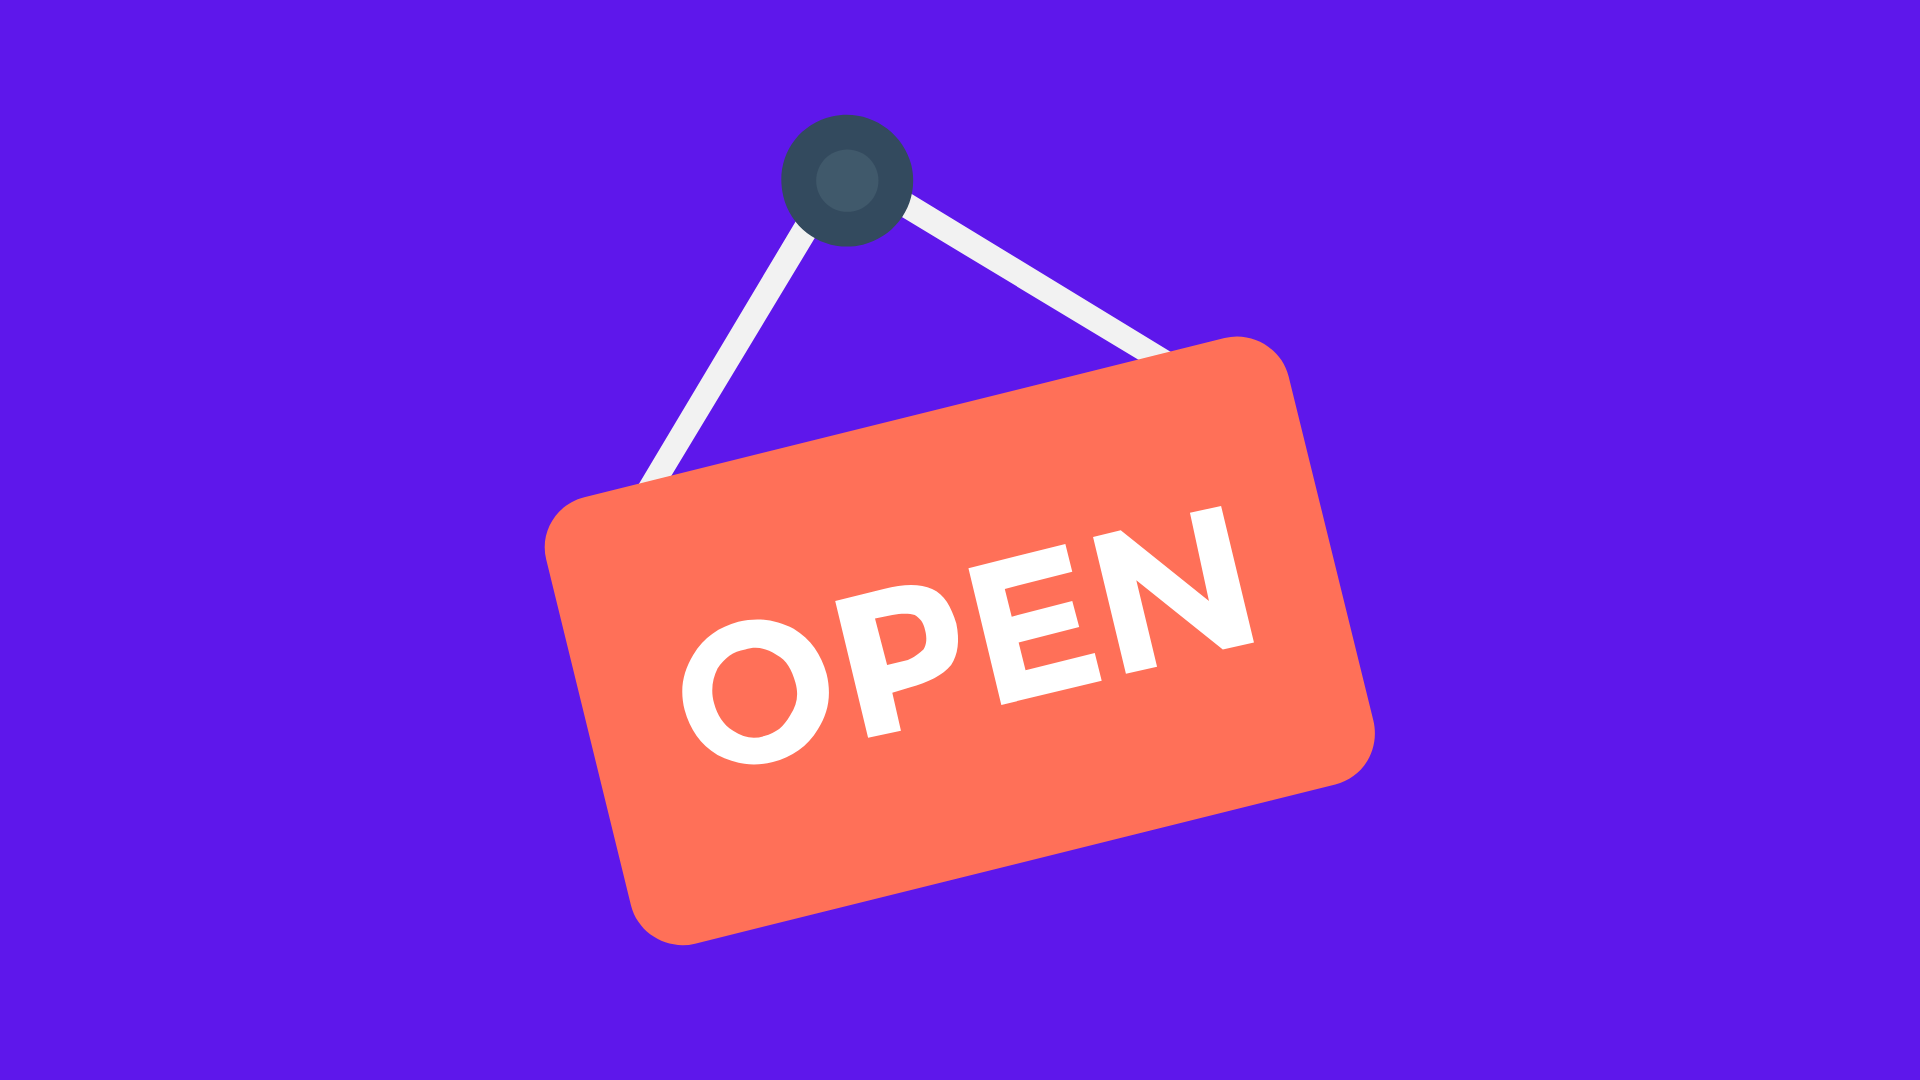 red open sign on blue background